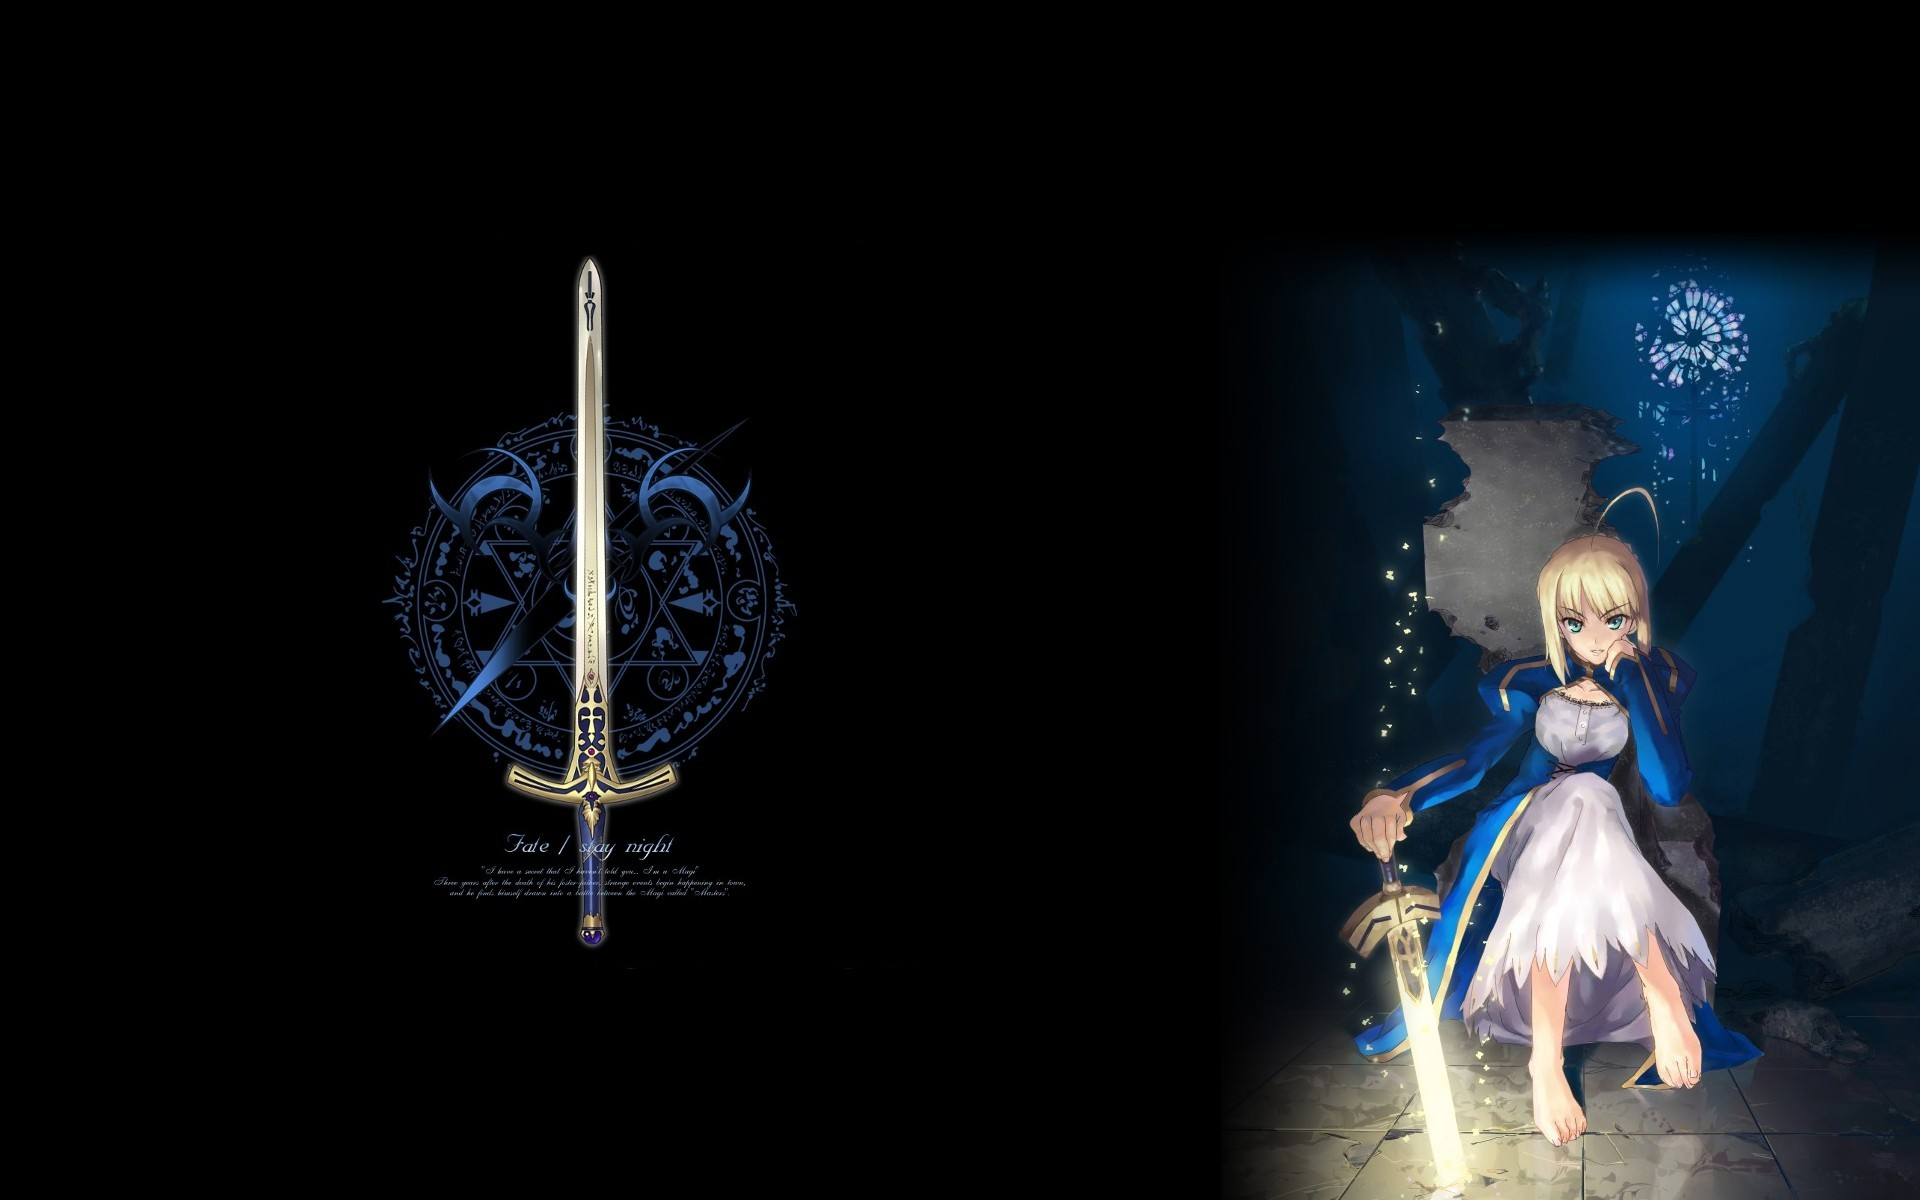 fate stay night Excalibur HD Wallpaper